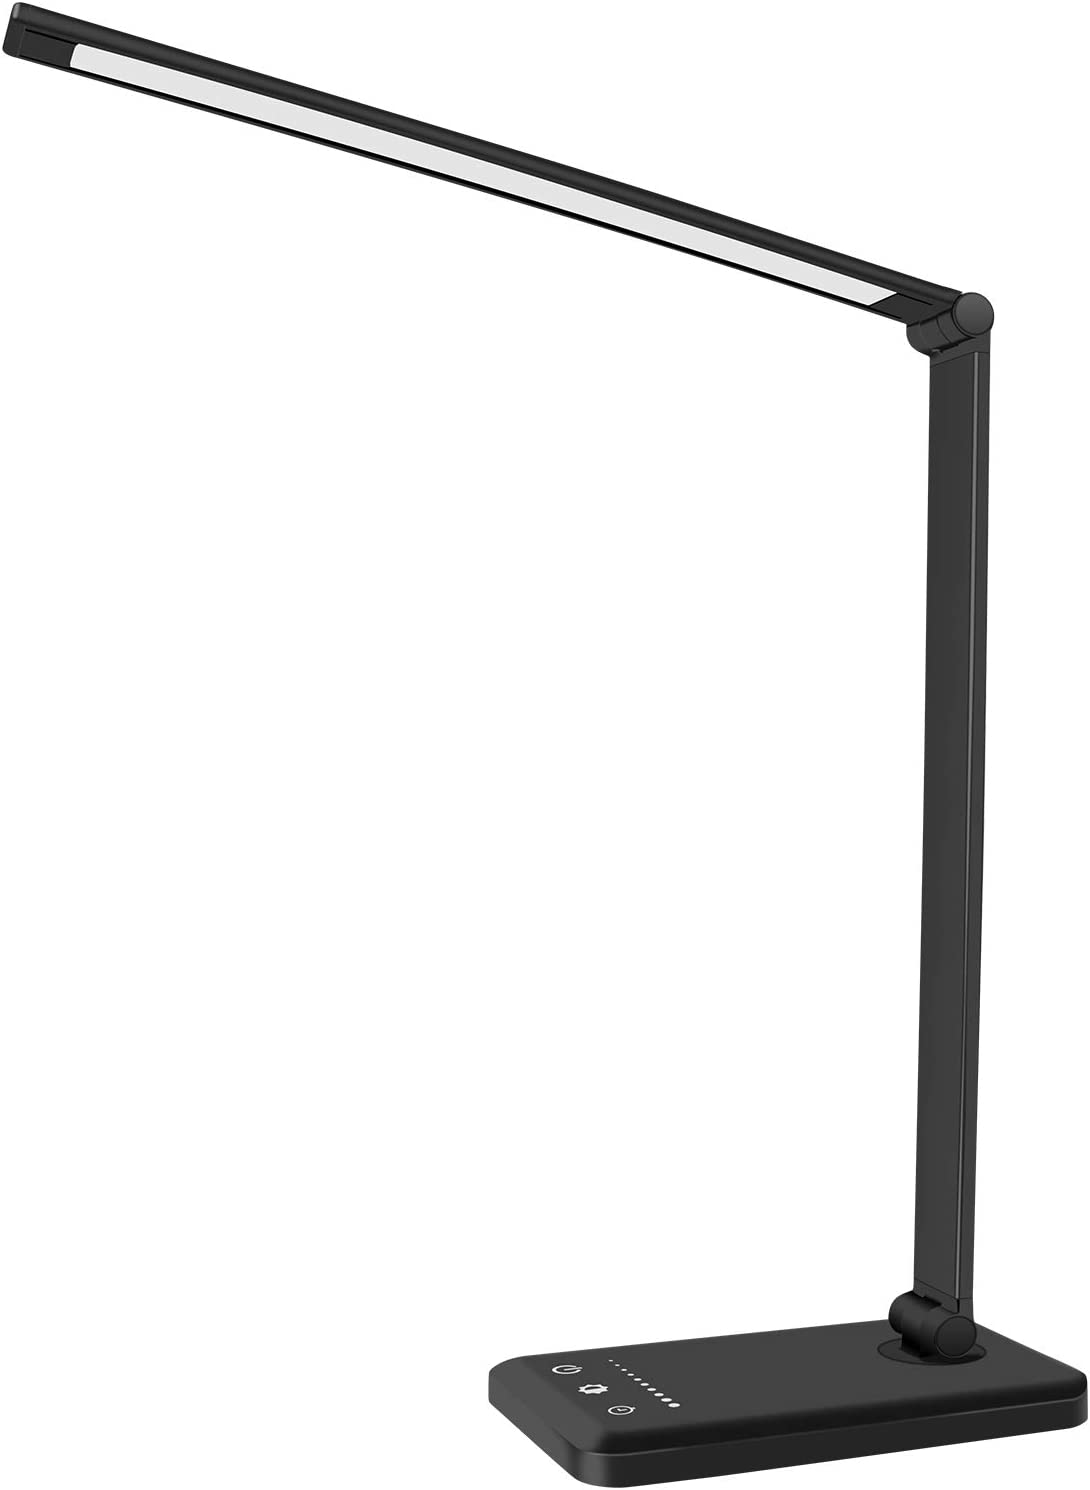 Lapeort LED Desk Lamp, Dimmable Table Lamps with USB Charging Port, Eye-Caring Portable Office Lamp, 5 Lighting Modes, Touch Control, Timer/Memory Function for Dorm, Working, Study, Reading